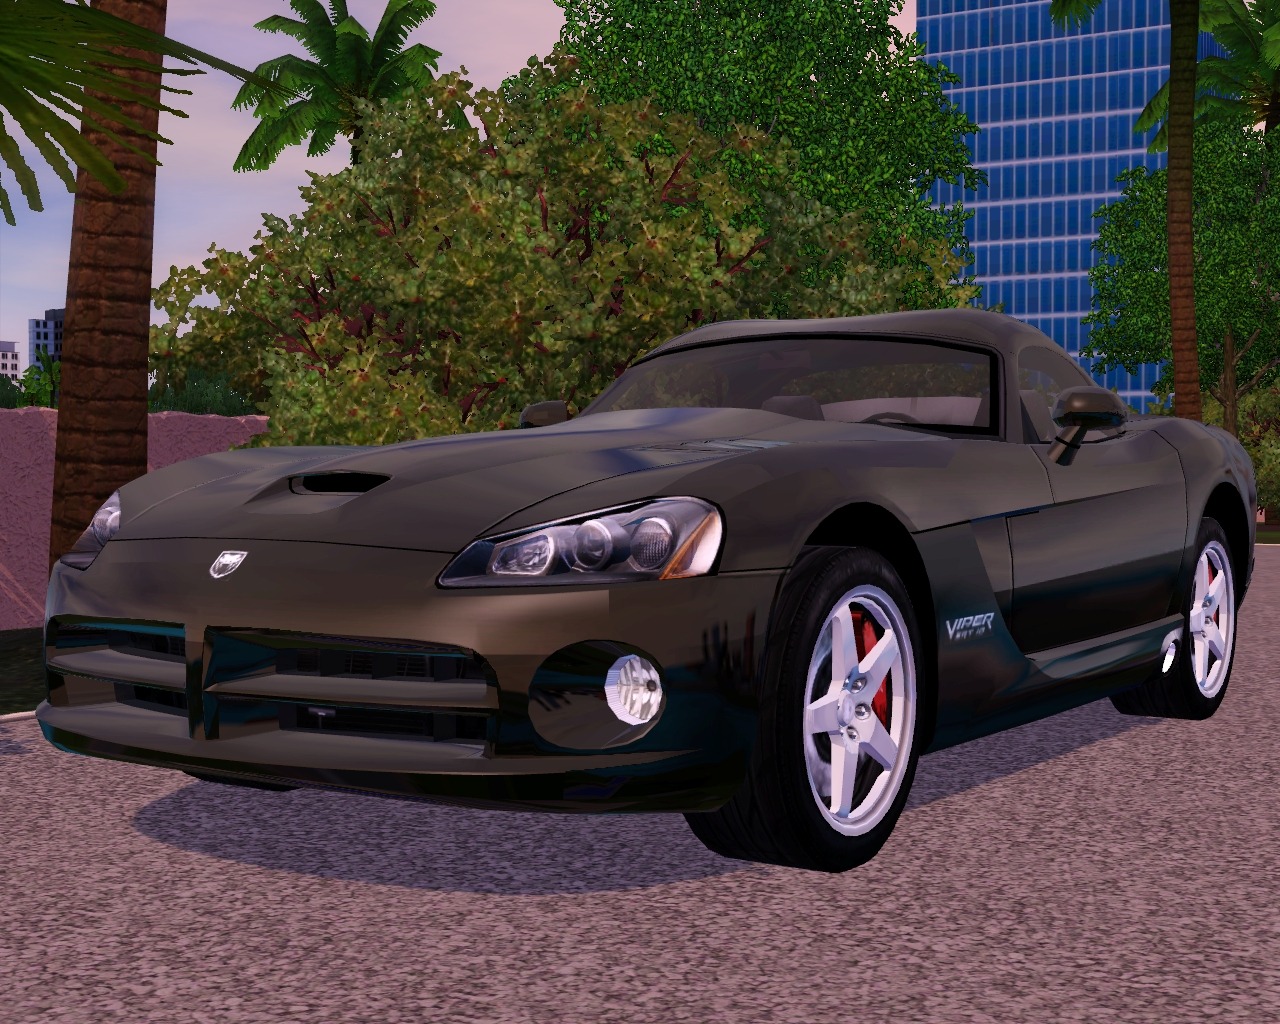 2005 Dodge Viper SRT-10 by Fresh-Prince